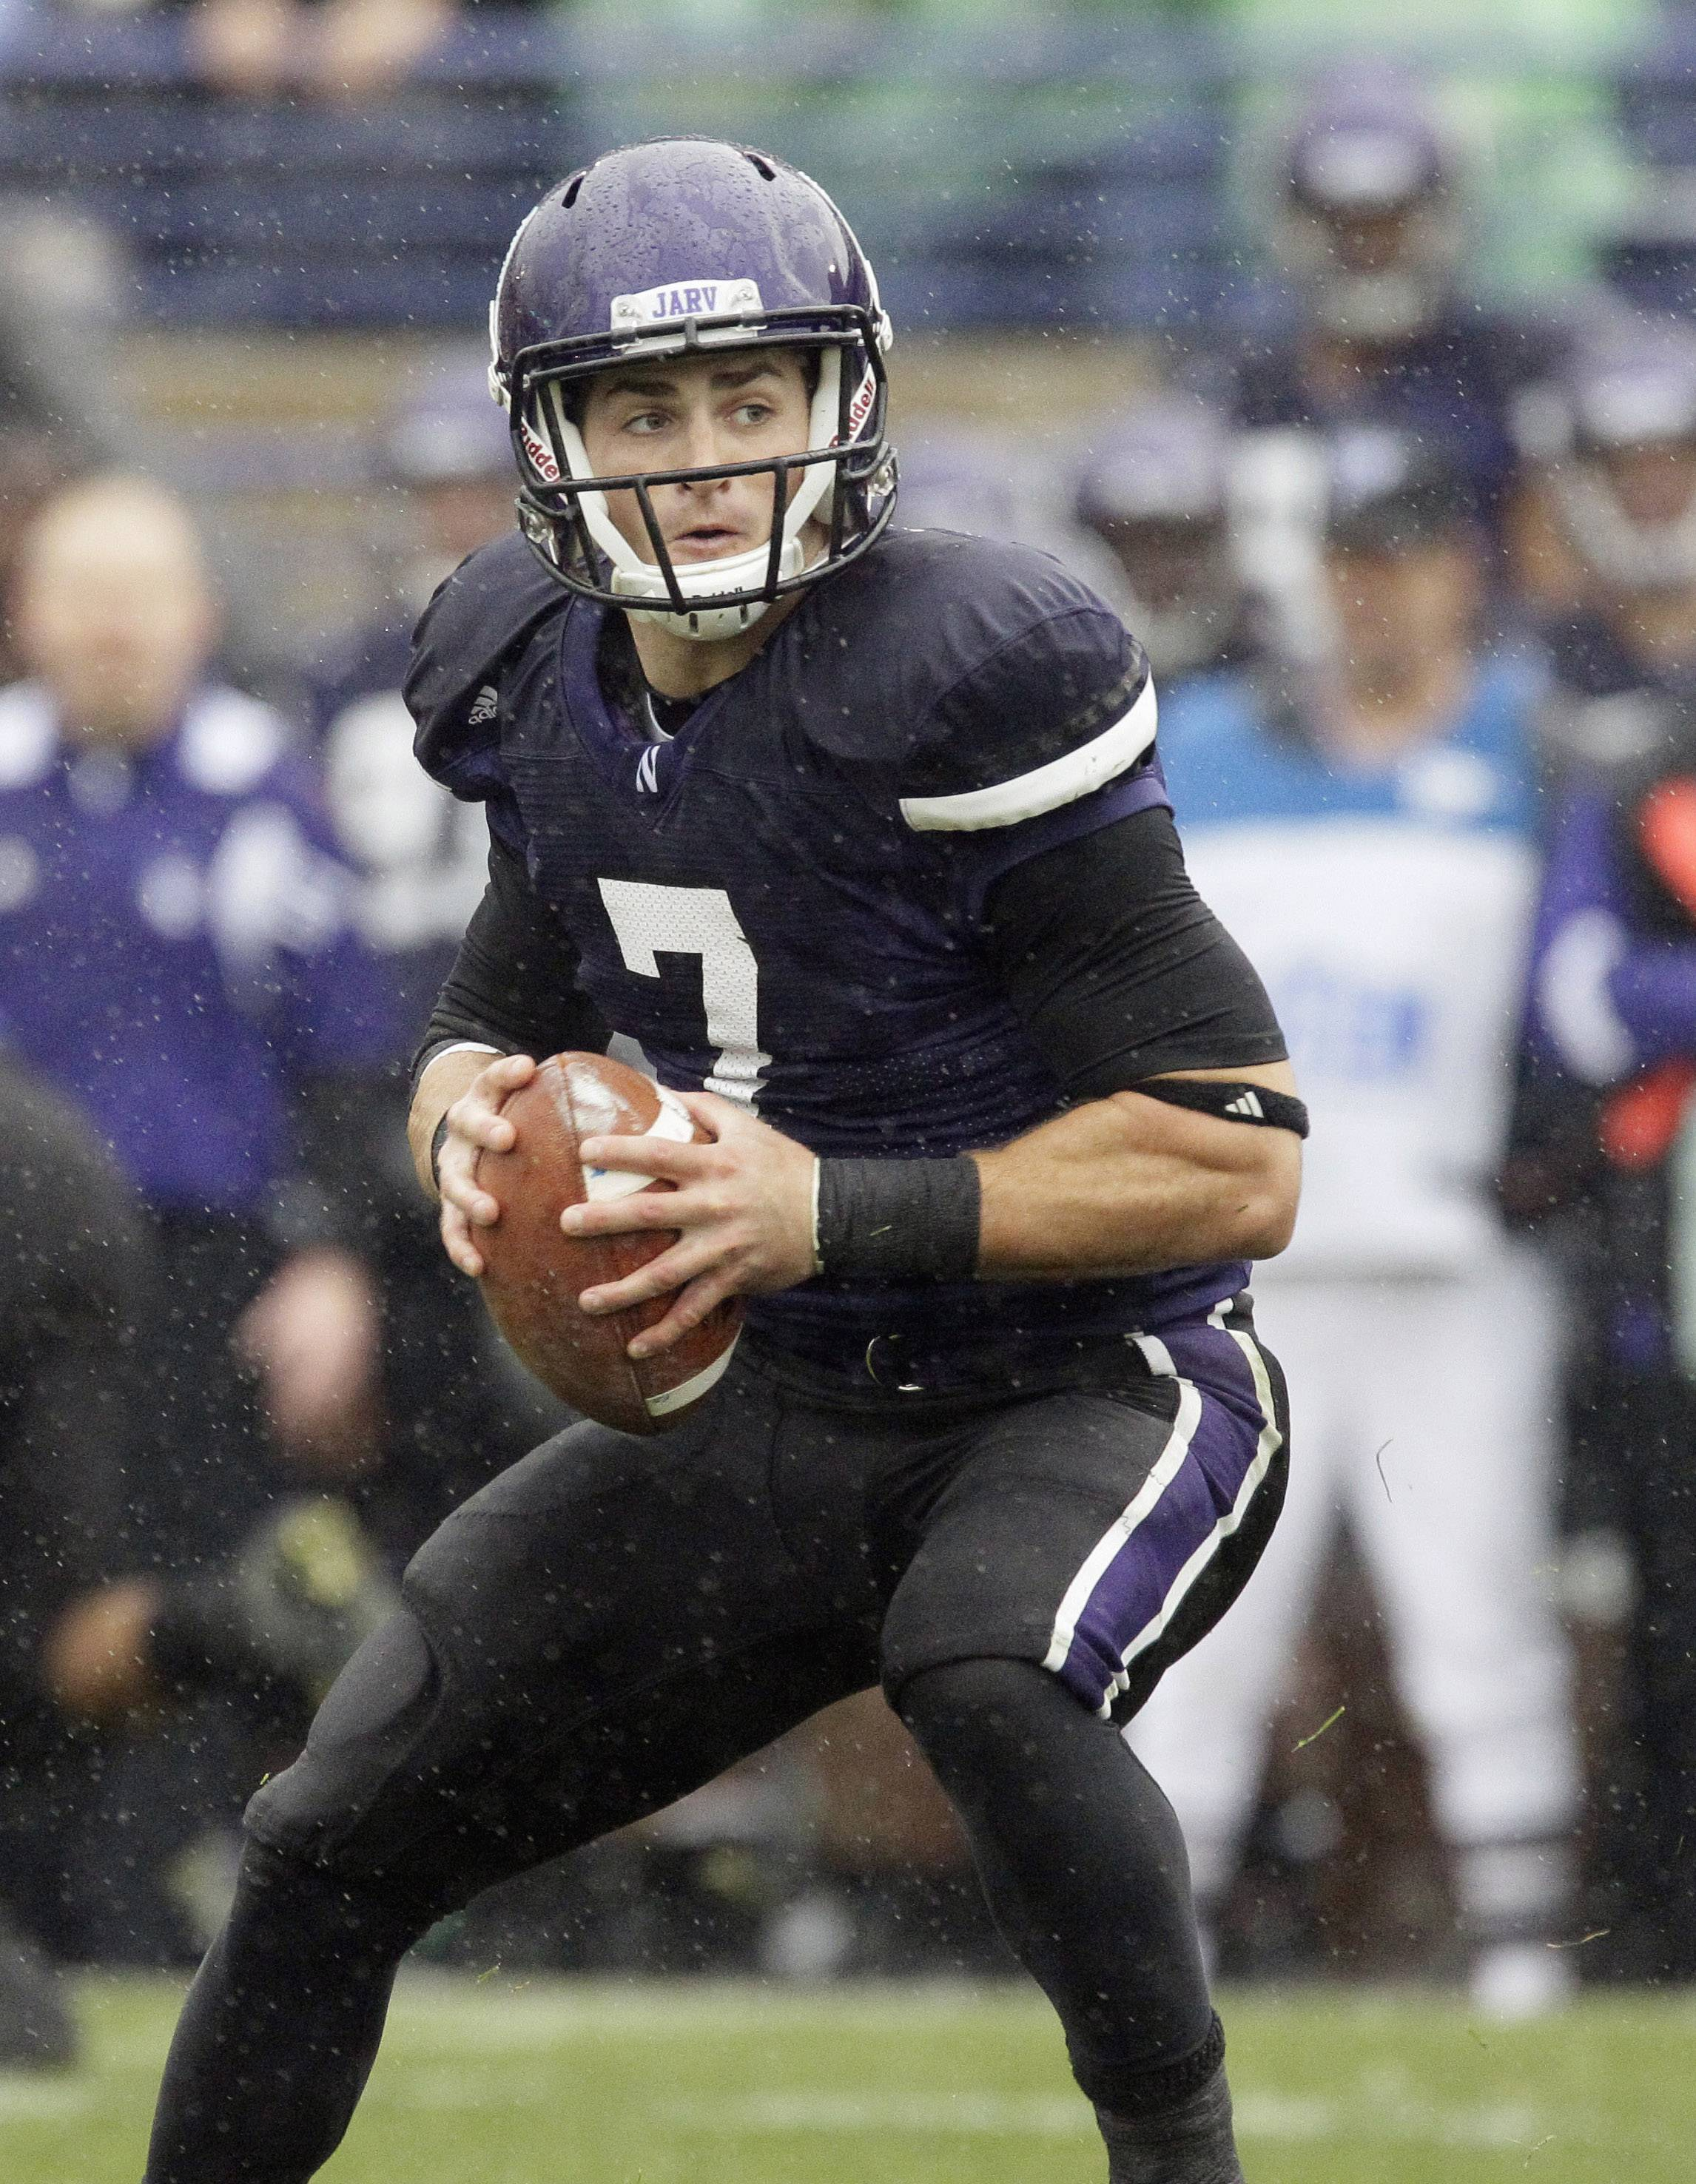 Northwestern quarterback Dan Persa, who is still recovering from a ruptured Achilles' tendon, is listed as questionable for Saturday's opener at Boston College.